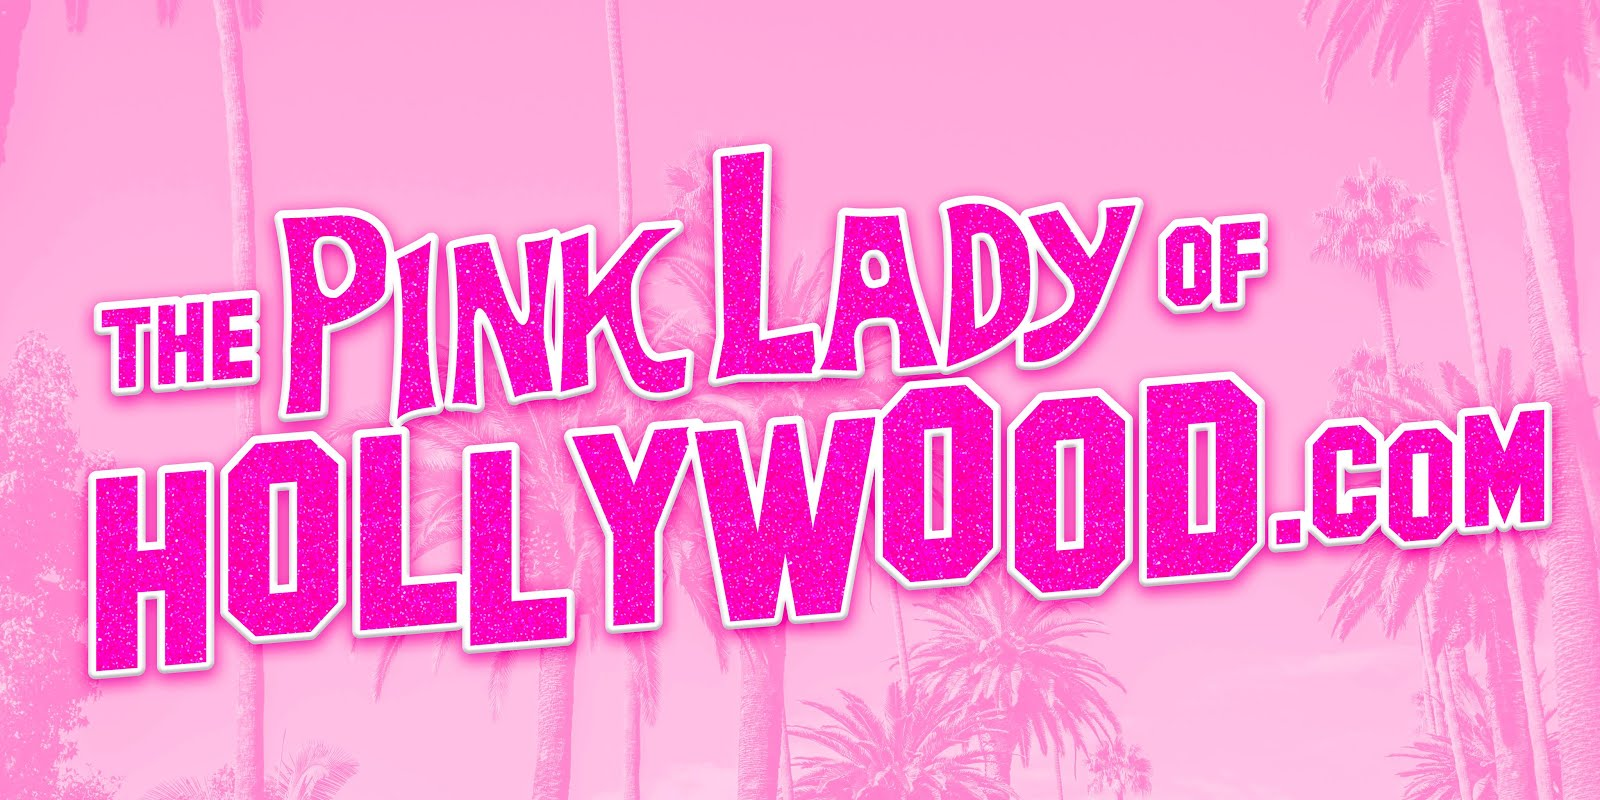 The Pink Lady of Hollywood is KITTEN KAY SERA